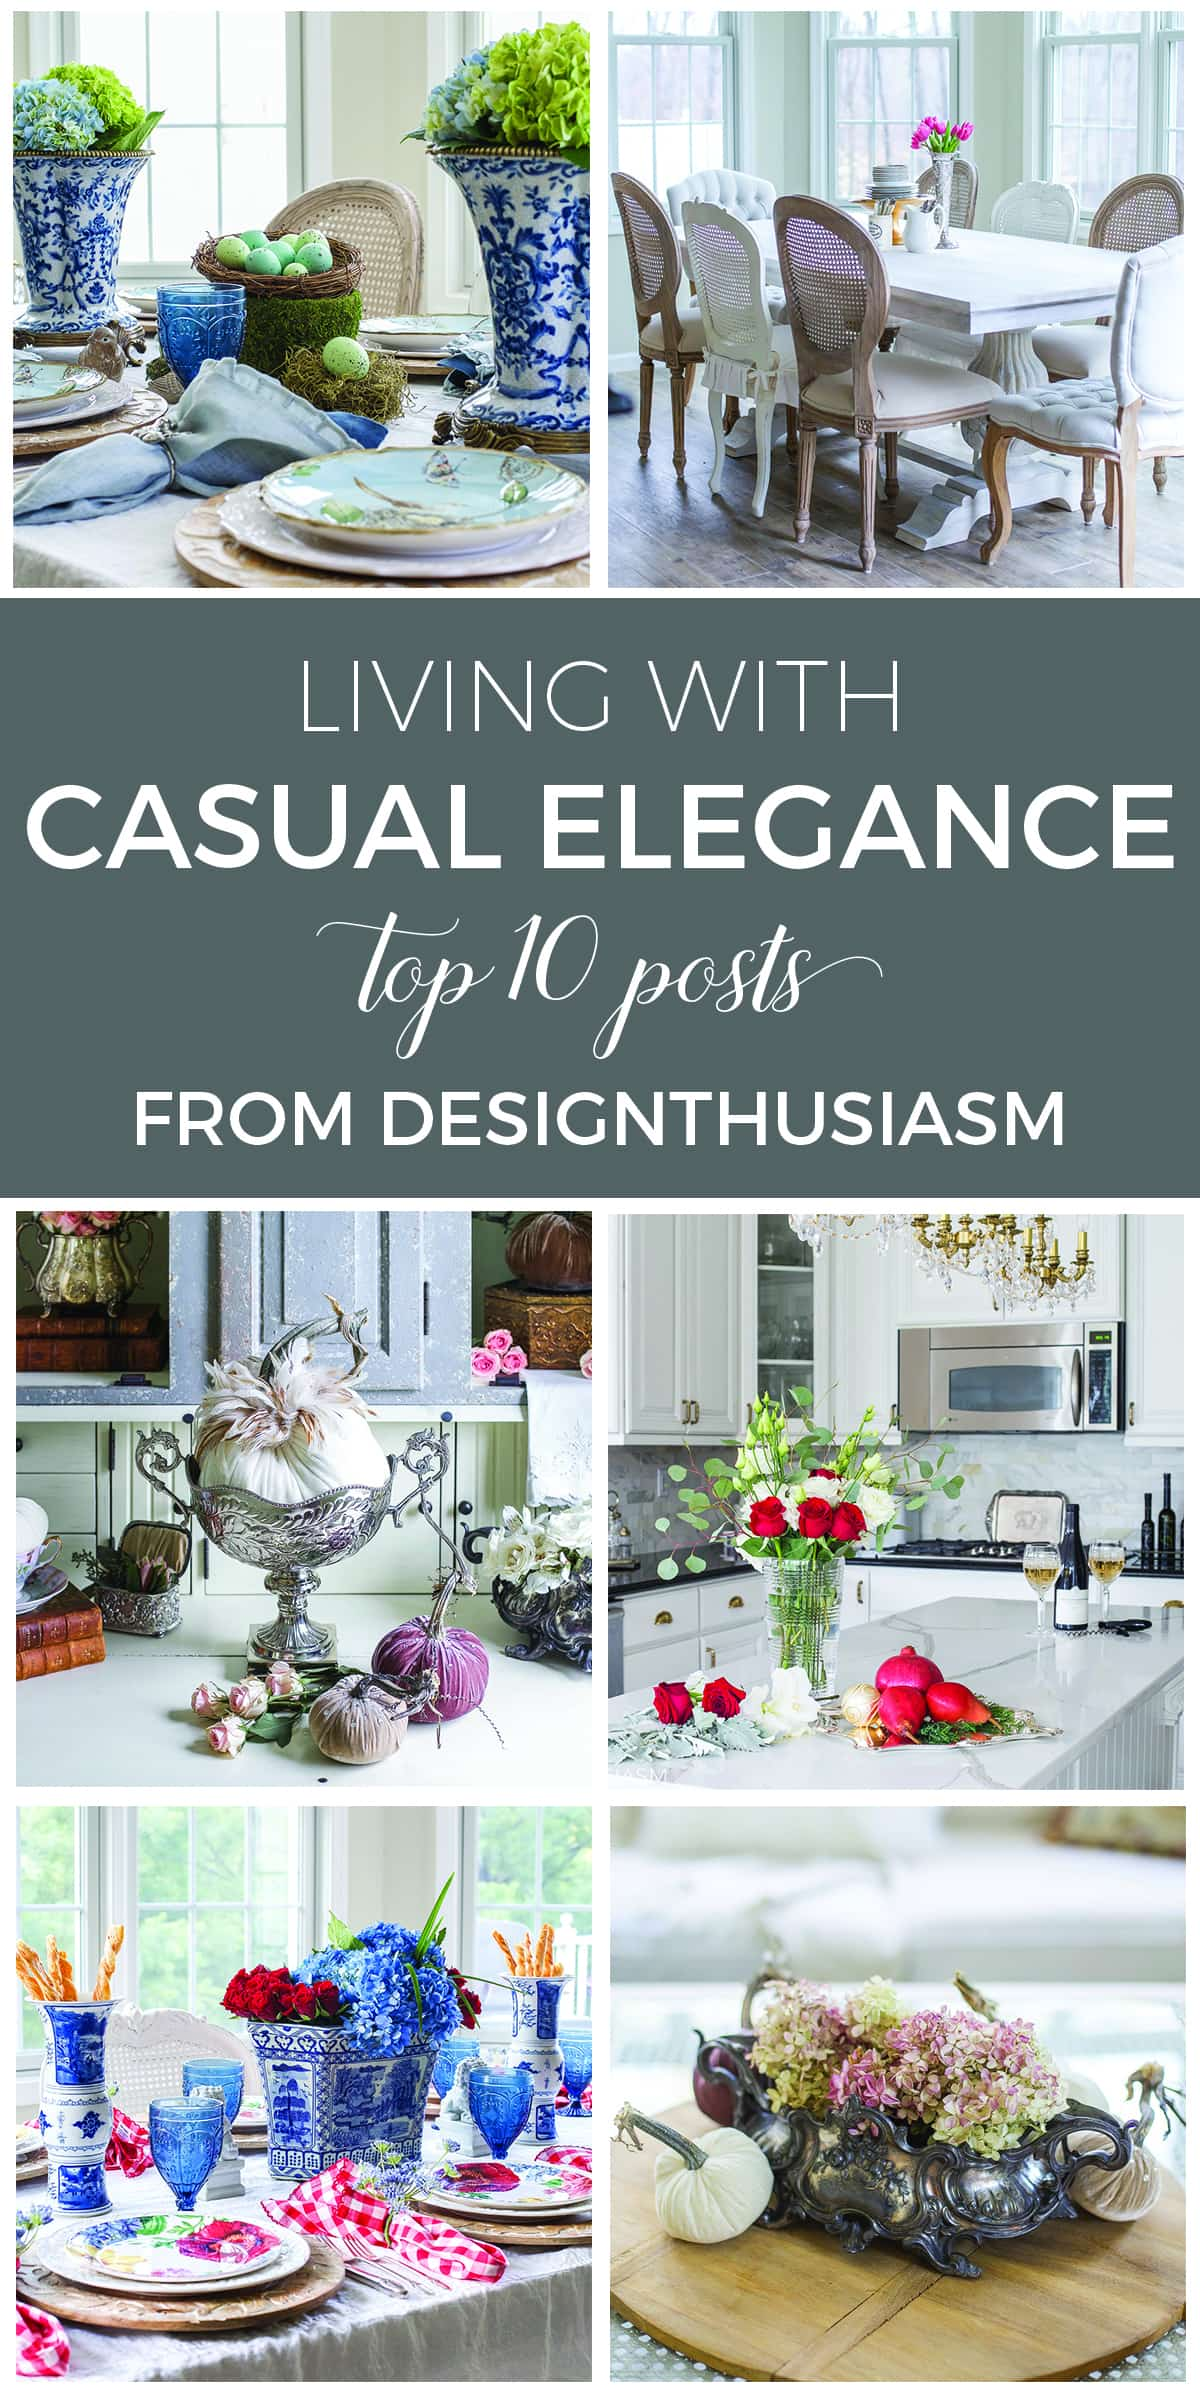 Living with Casual Elegance - Top 10 Posts of 2017 - designthusiasm.com